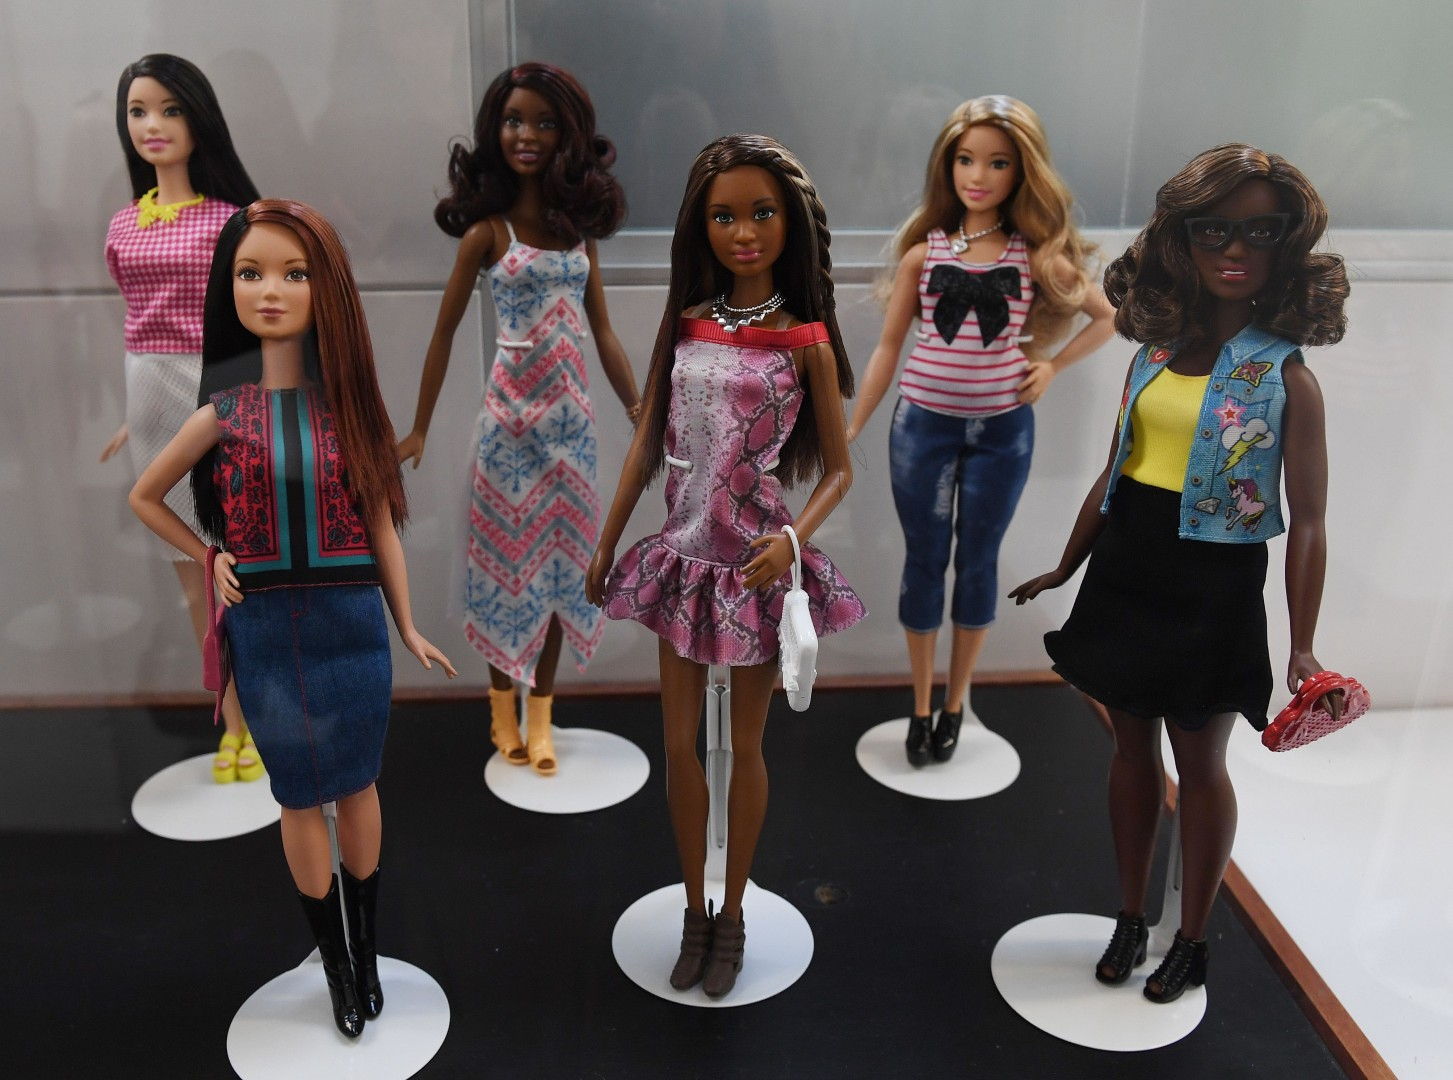 60 Years Of The Barbie Doll The Controversies The Triumphs And How